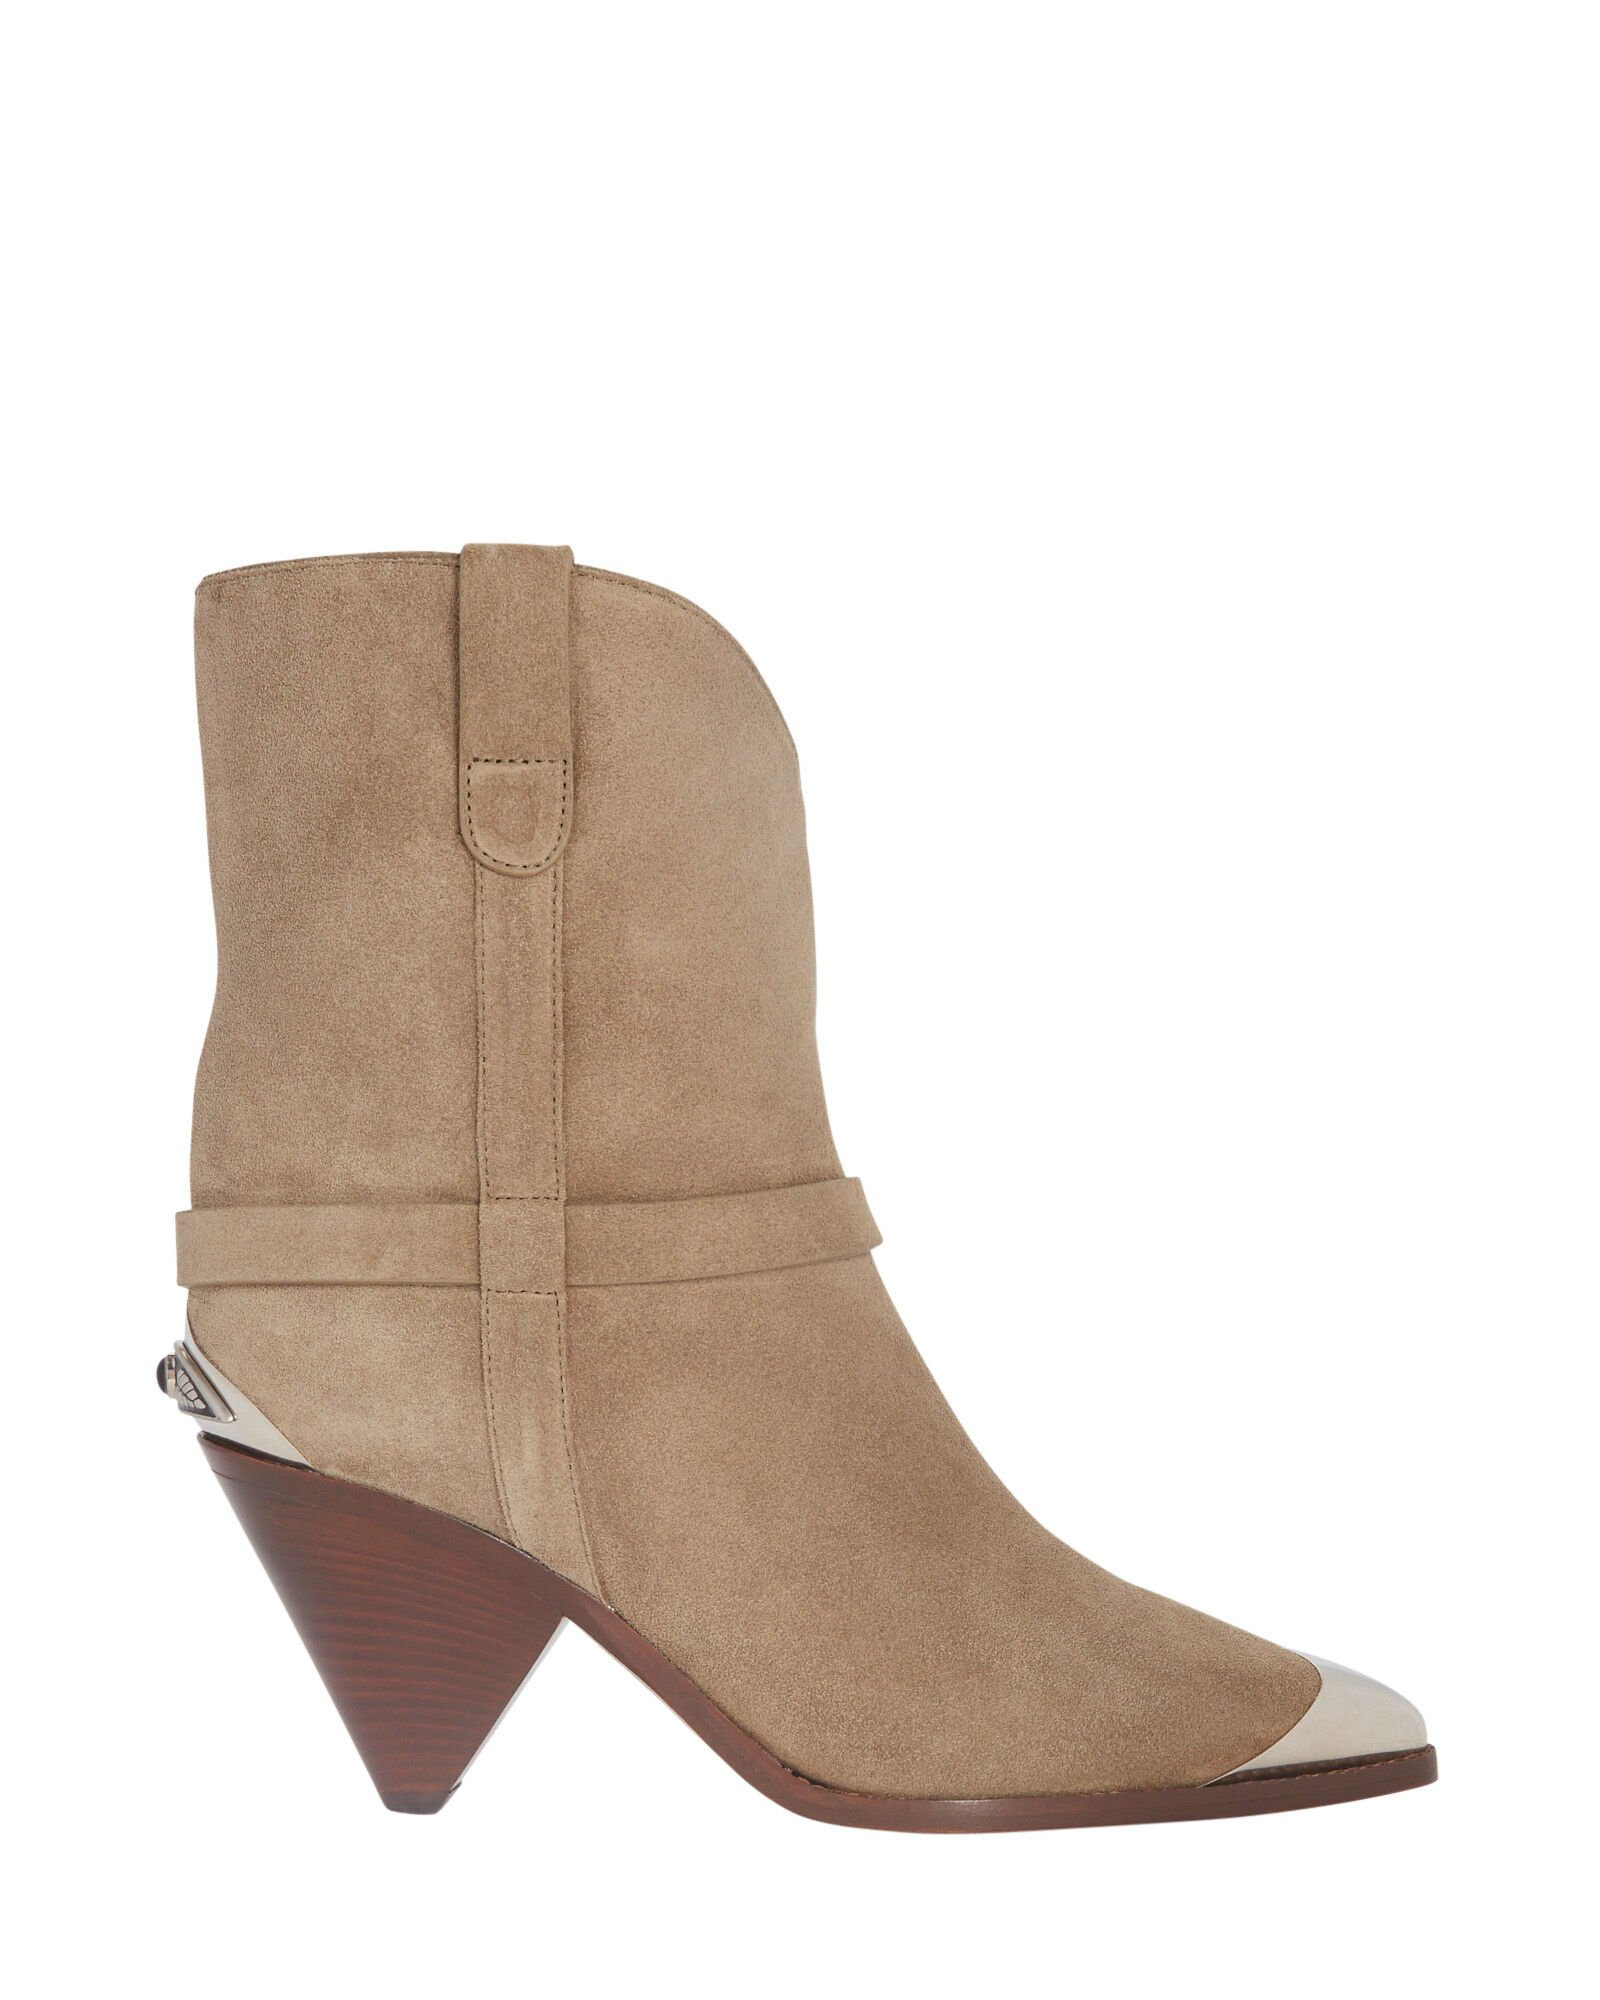 Limza Suede Ankle Boots, , hi-res